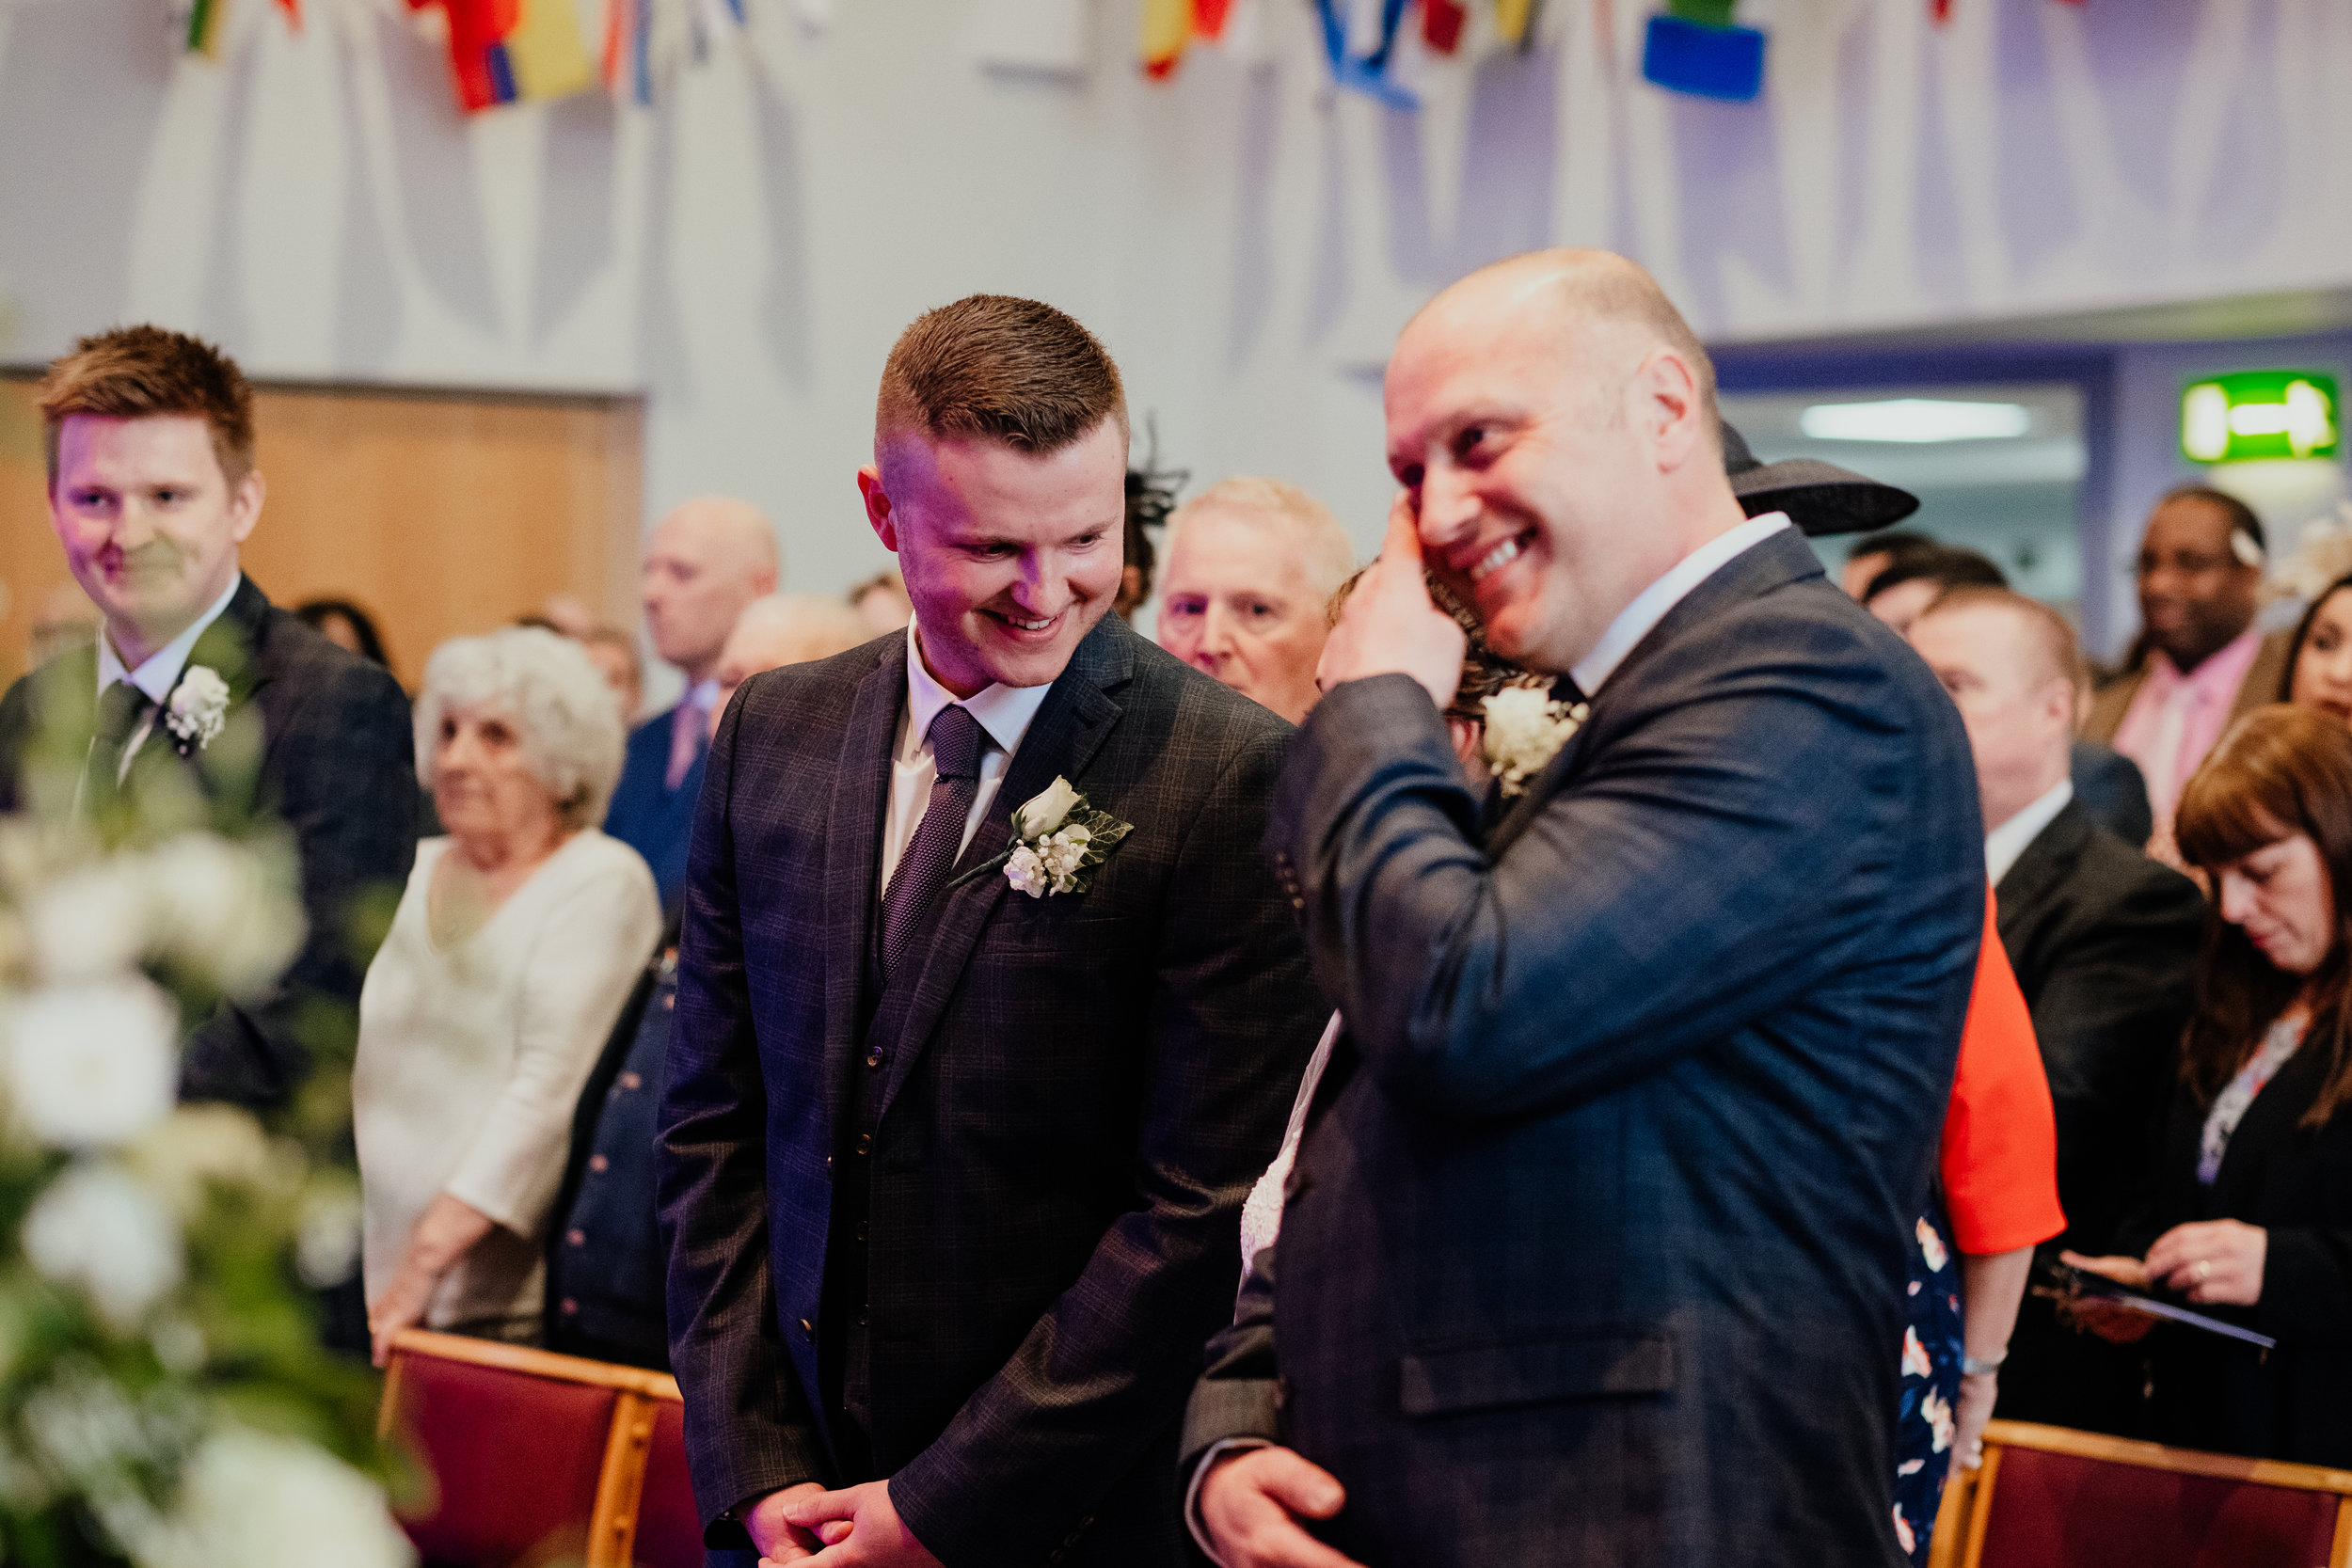 Groom smiles at Bride as Father of Bride wipes a tear from his eyes and smiles